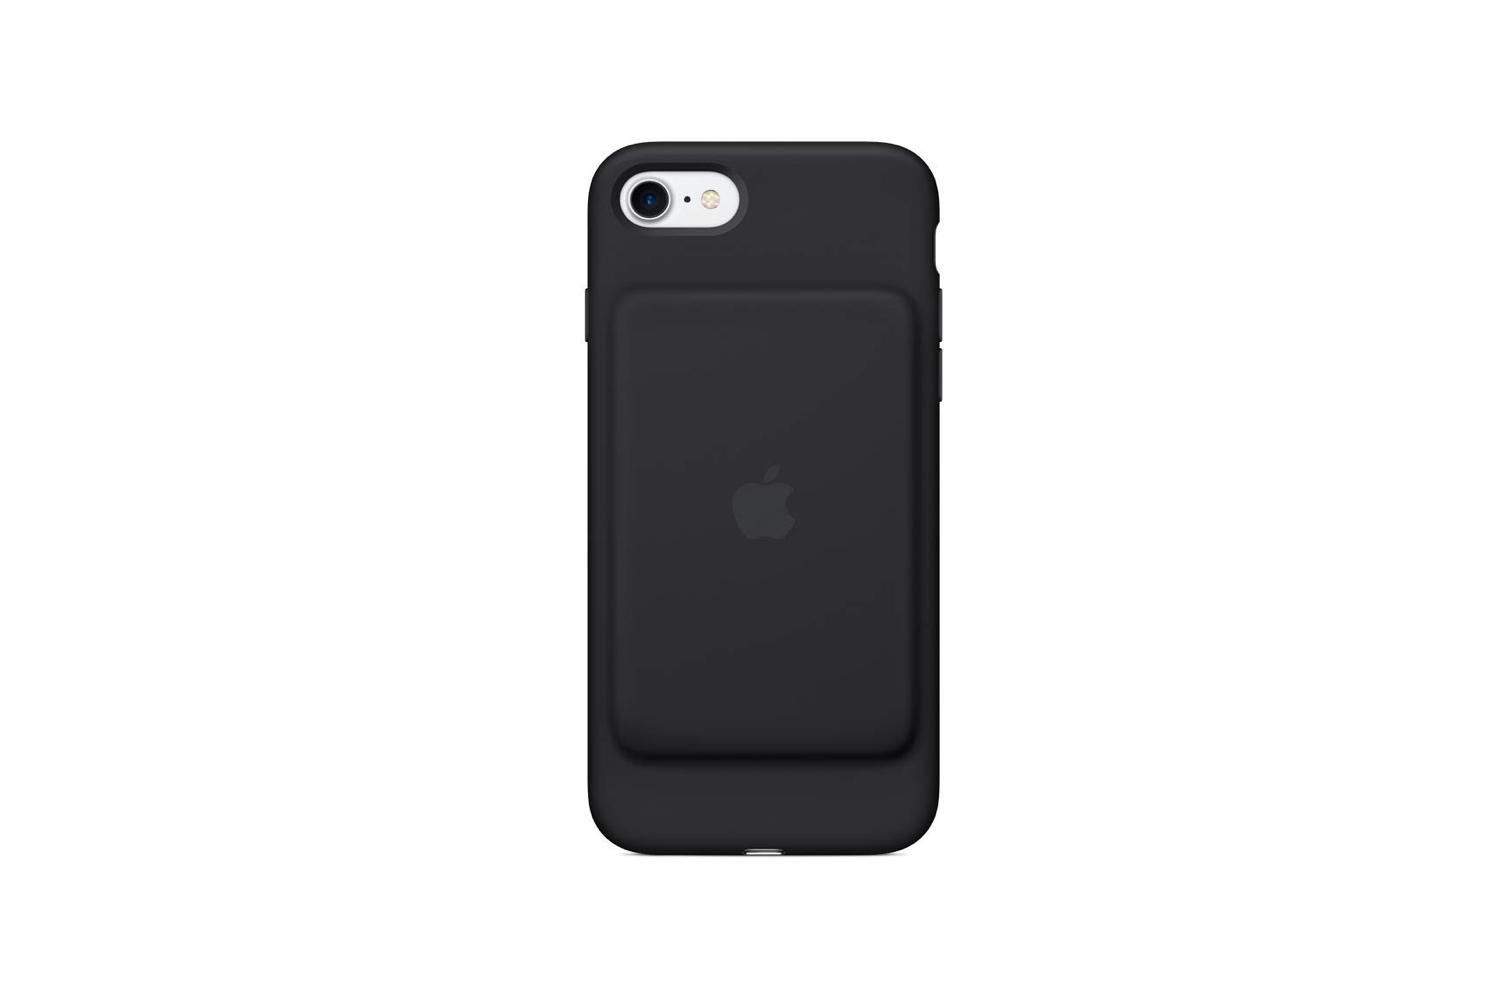 Apple Smart Battery Case For iPhone 7/8 Gives You Extra Battery Backup & Better Protection. $60 Only | TheAppleTech